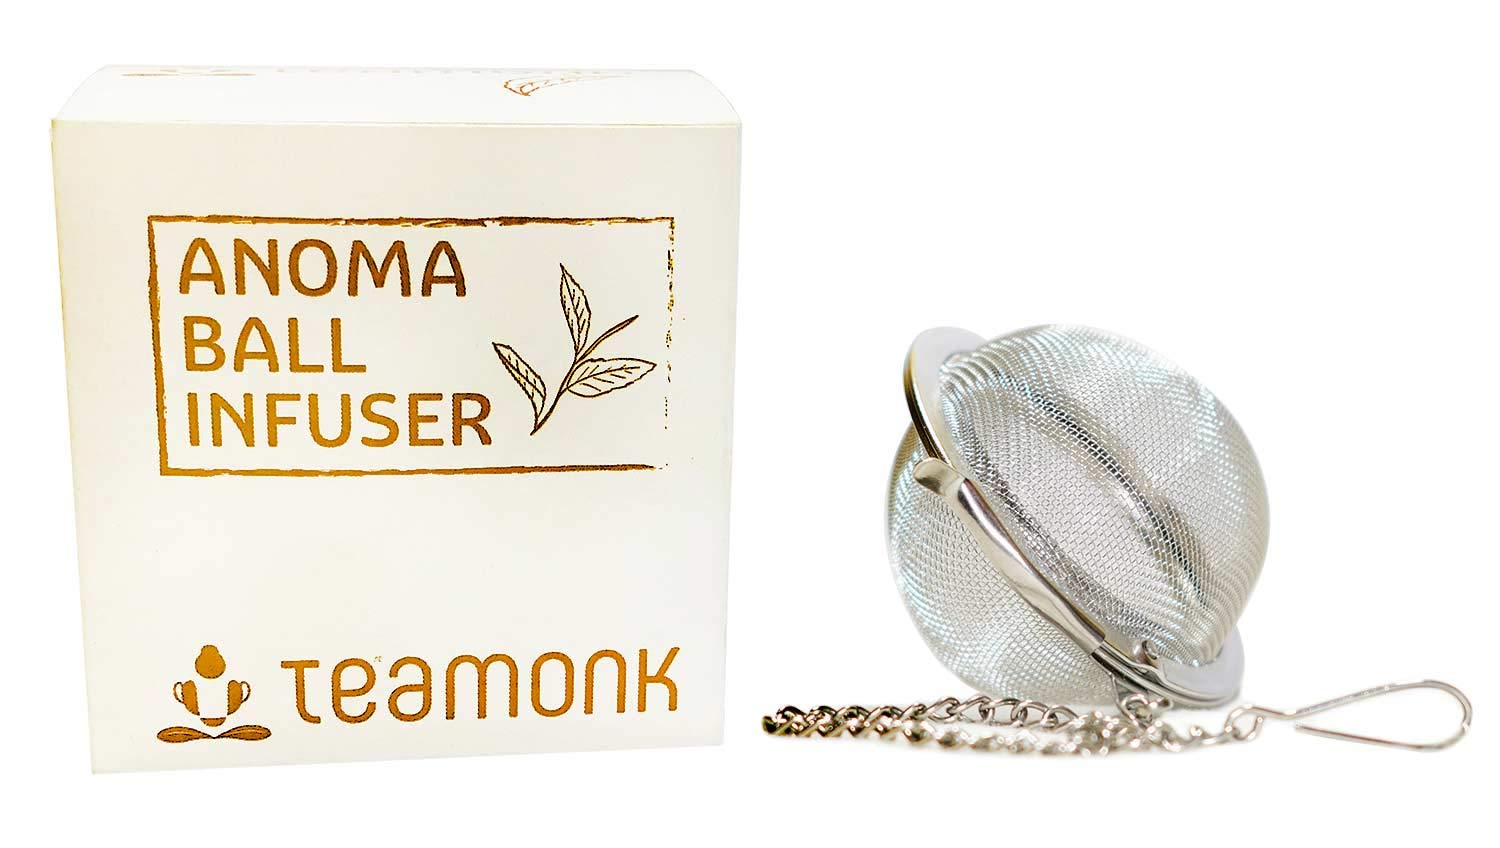 Teamonk Anoma Ball Infuser (Tea ball Infuser, Tea Infuser, Tea Strainer, Tea Filter, Tea Maker, Tea Ball, Stainless Steel) 8906088693320